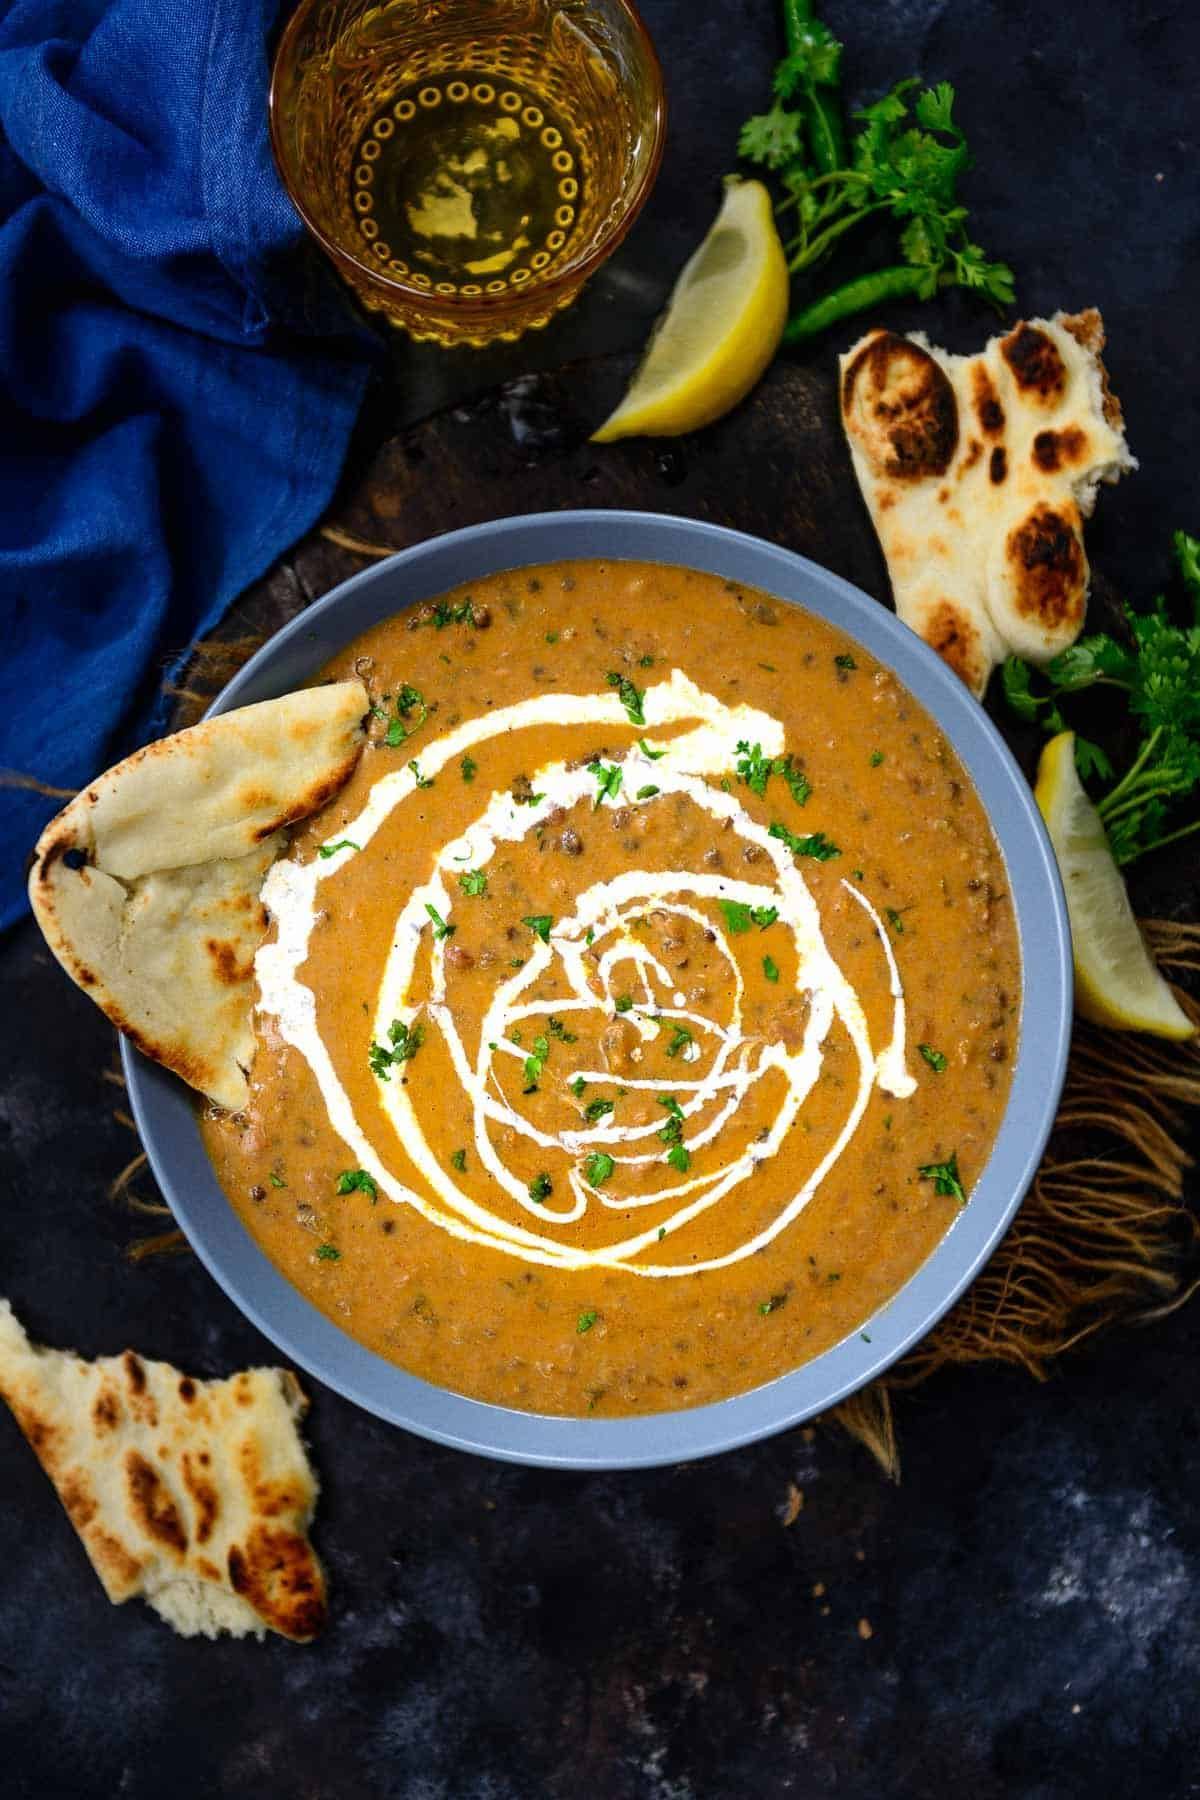 Dal Makhani served in a bowl.